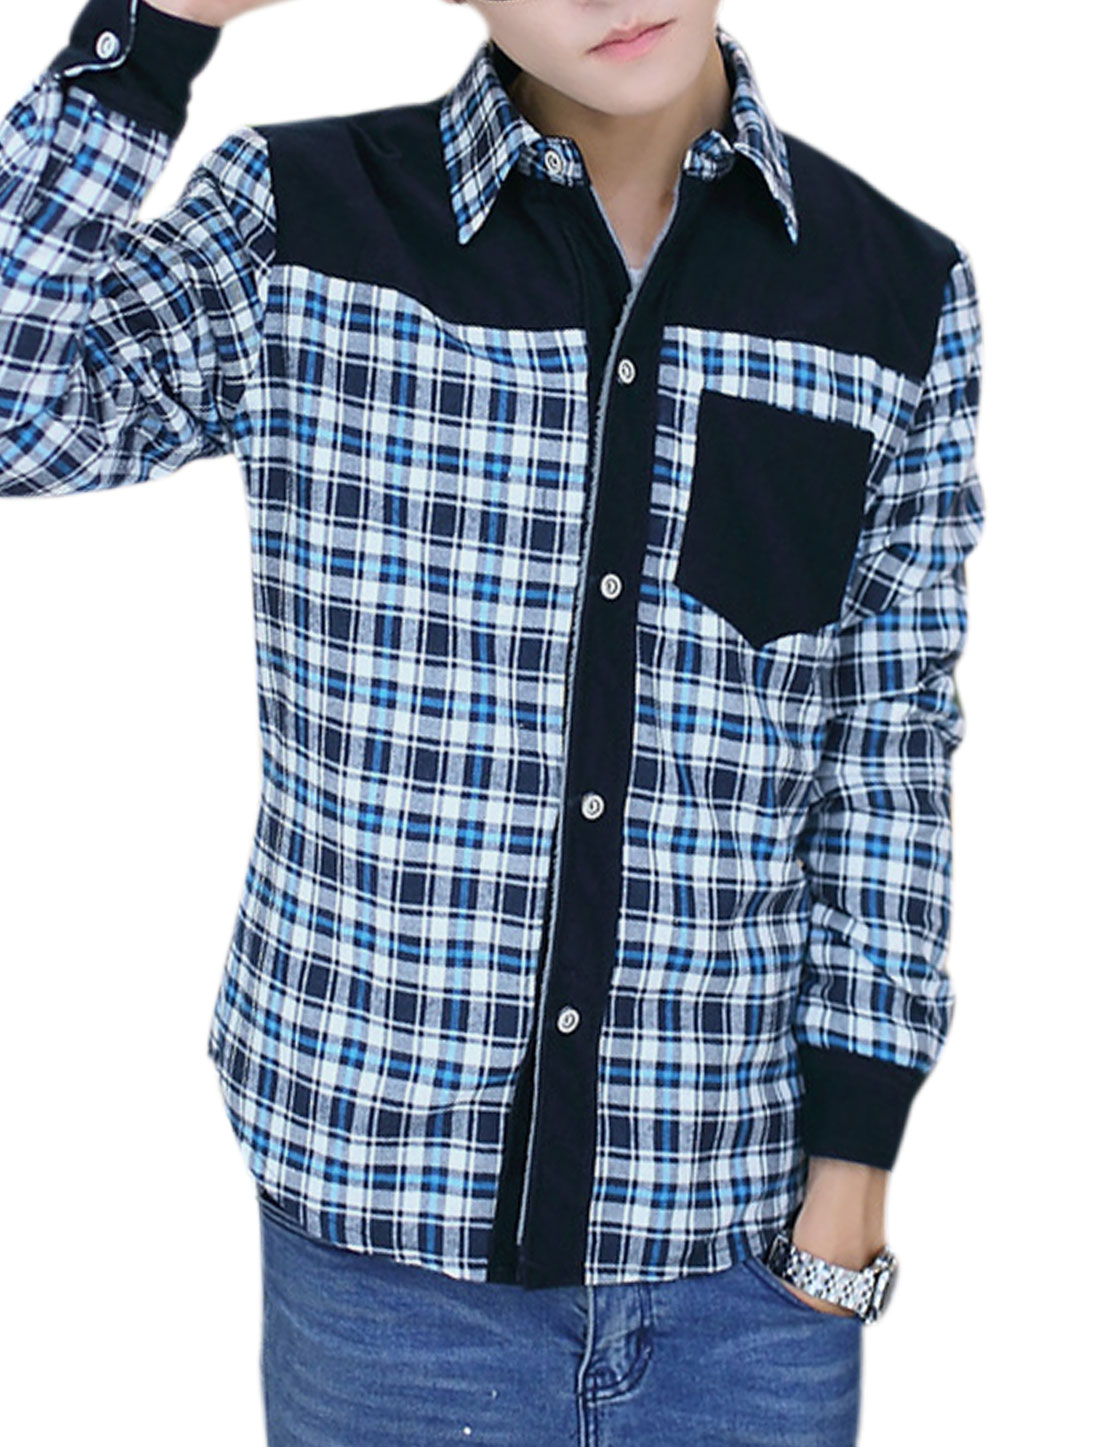 Men Checkered Pattern Corduroy Panel Fleece Lining Trendy Shirt Blue White M